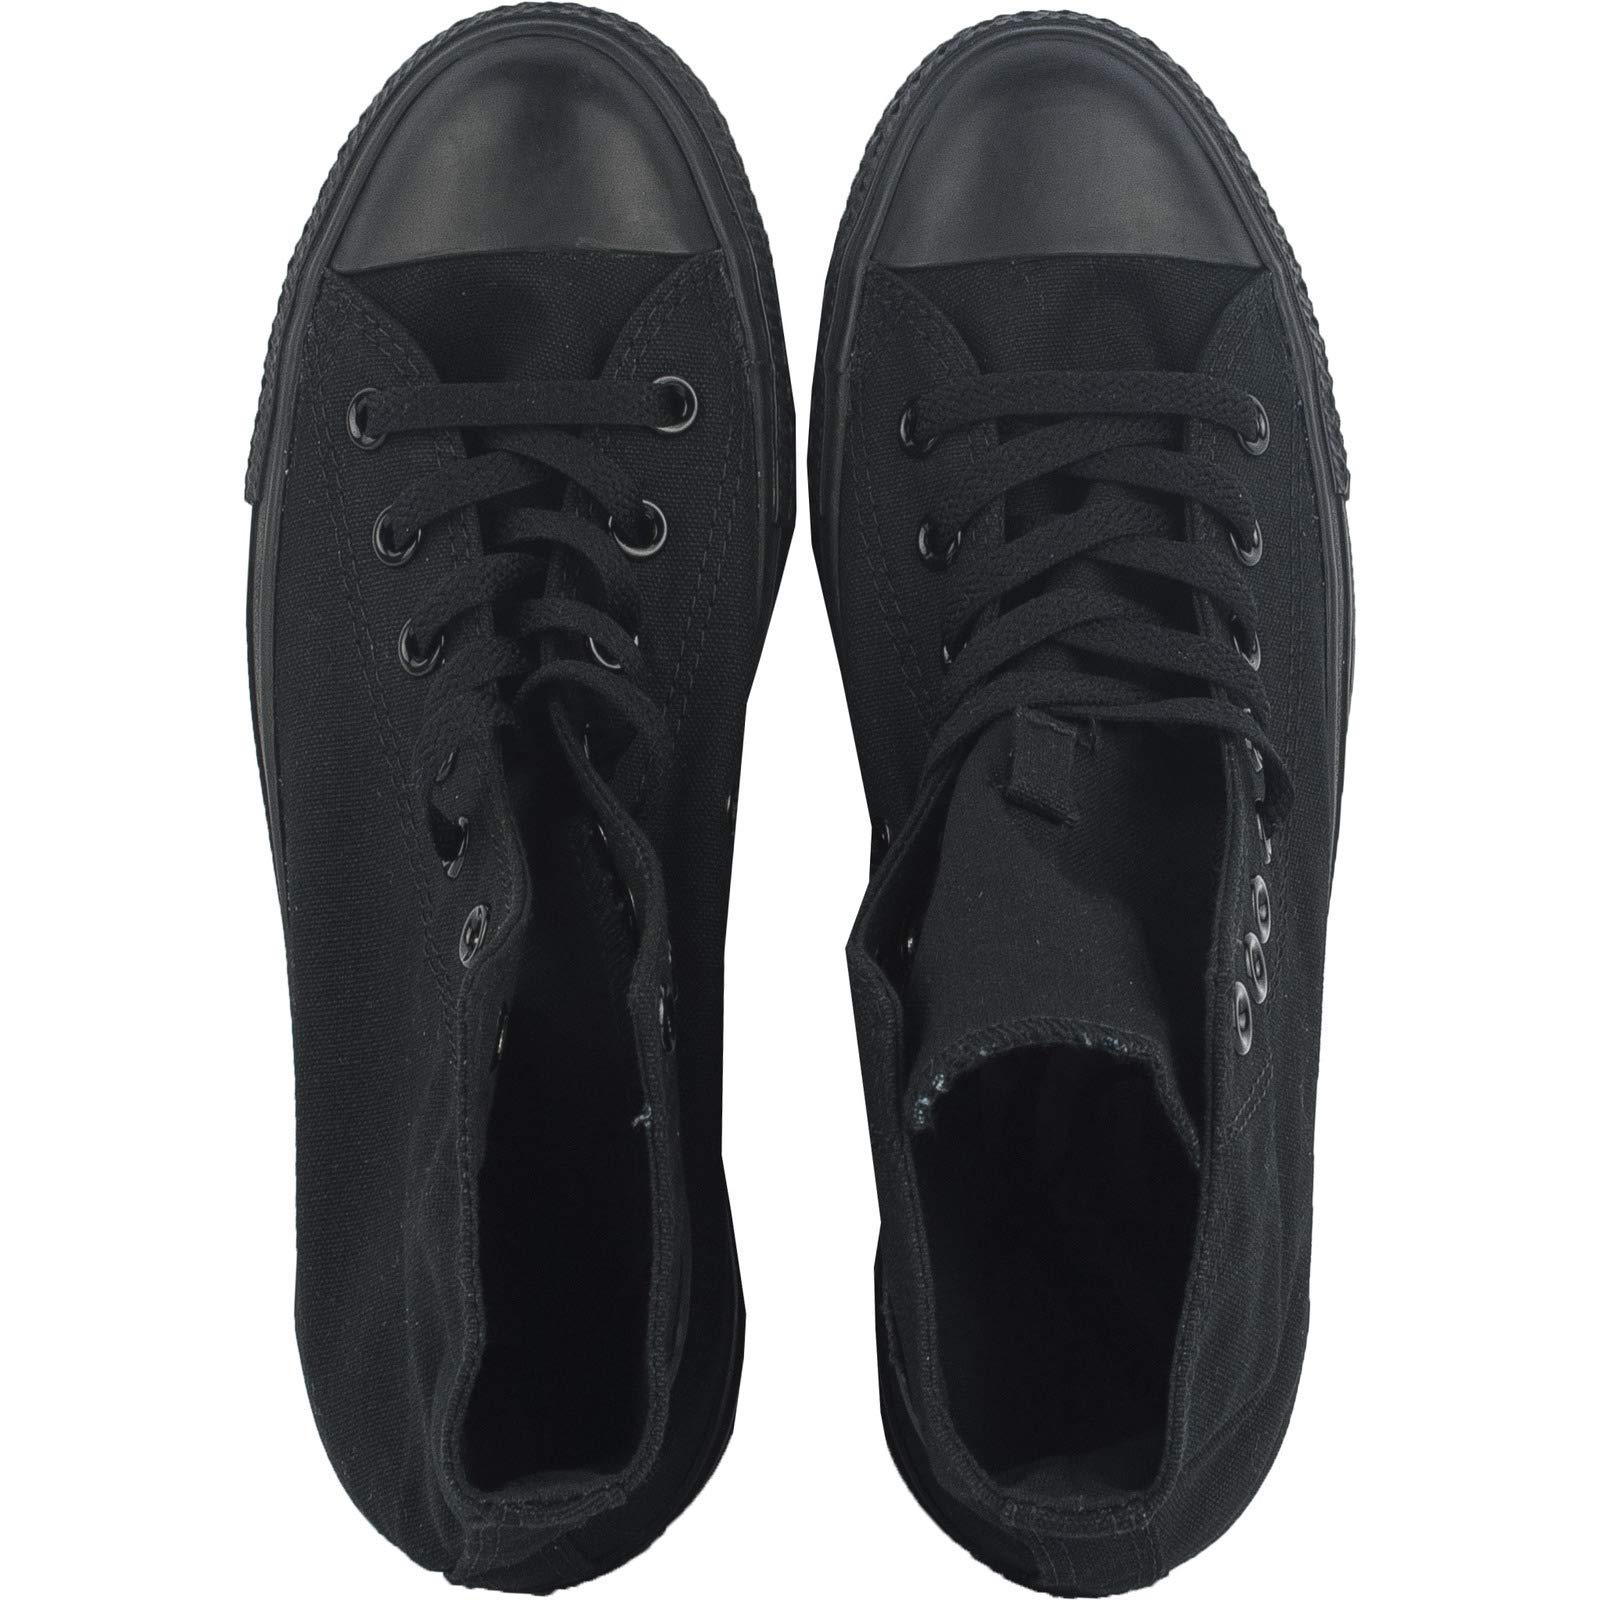 Converse M9160: Chuck Taylor All Star High Top Unisex Black White Sneakers by Converse (Image #11)